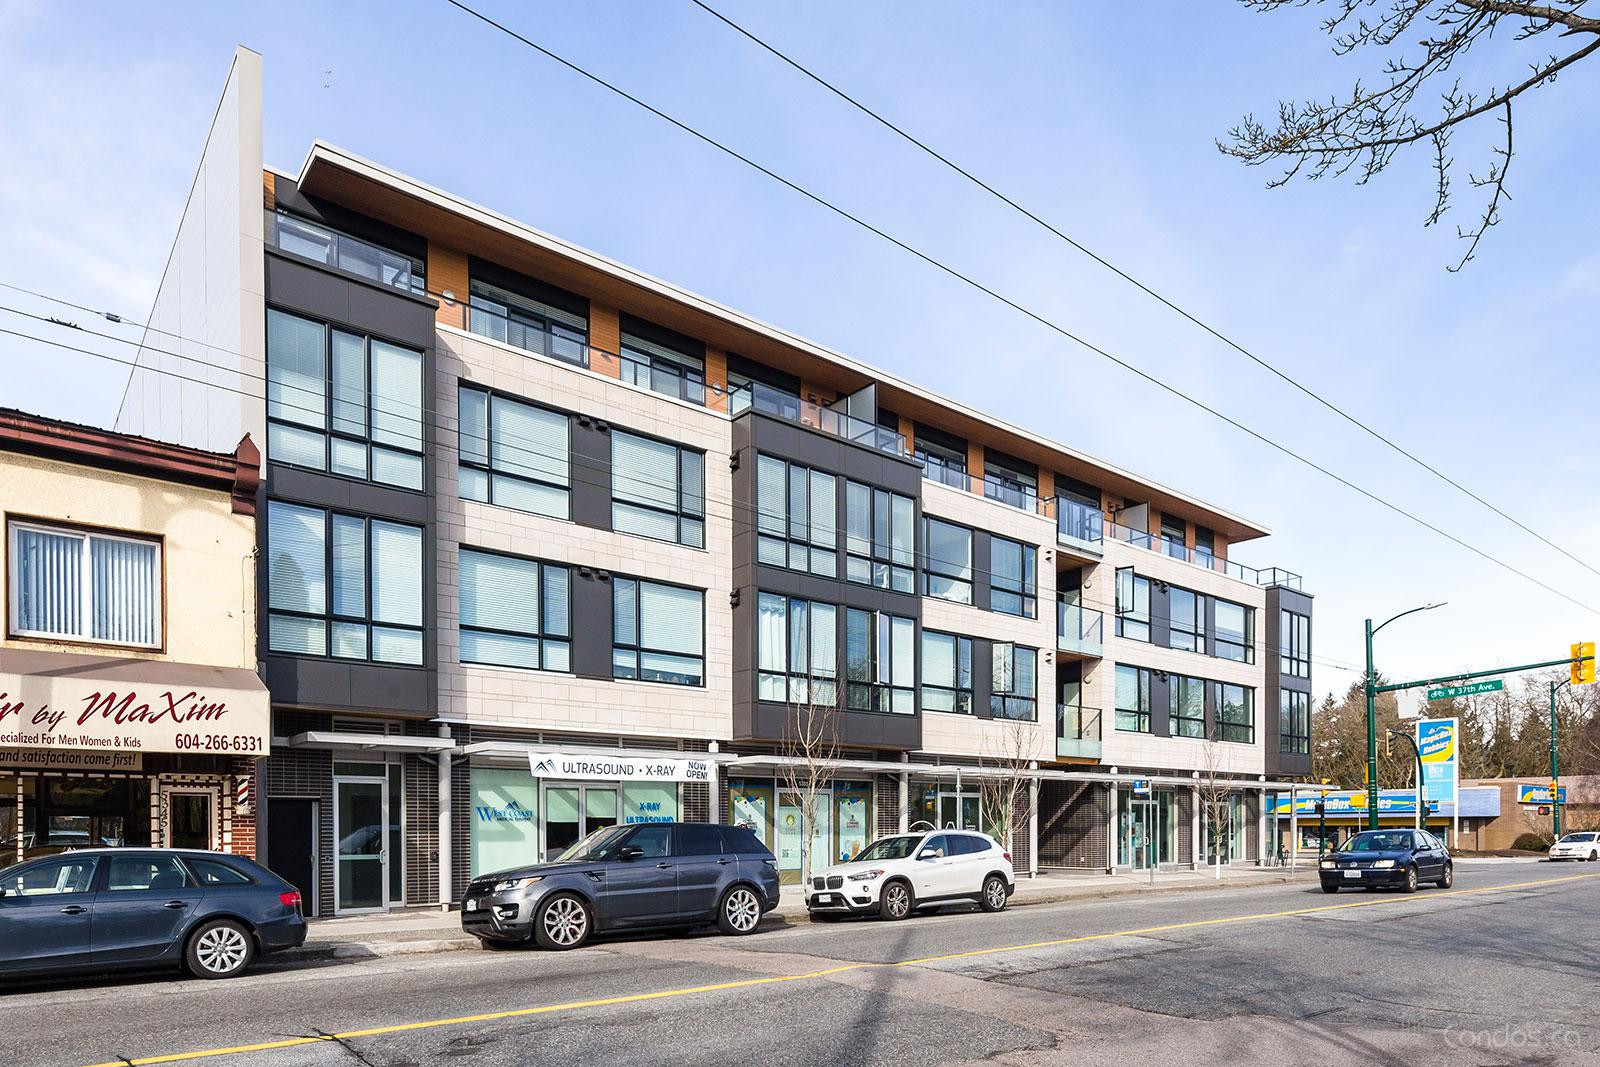 Boulevard Private Residences at 5325 West Blvd, Vancouver 1